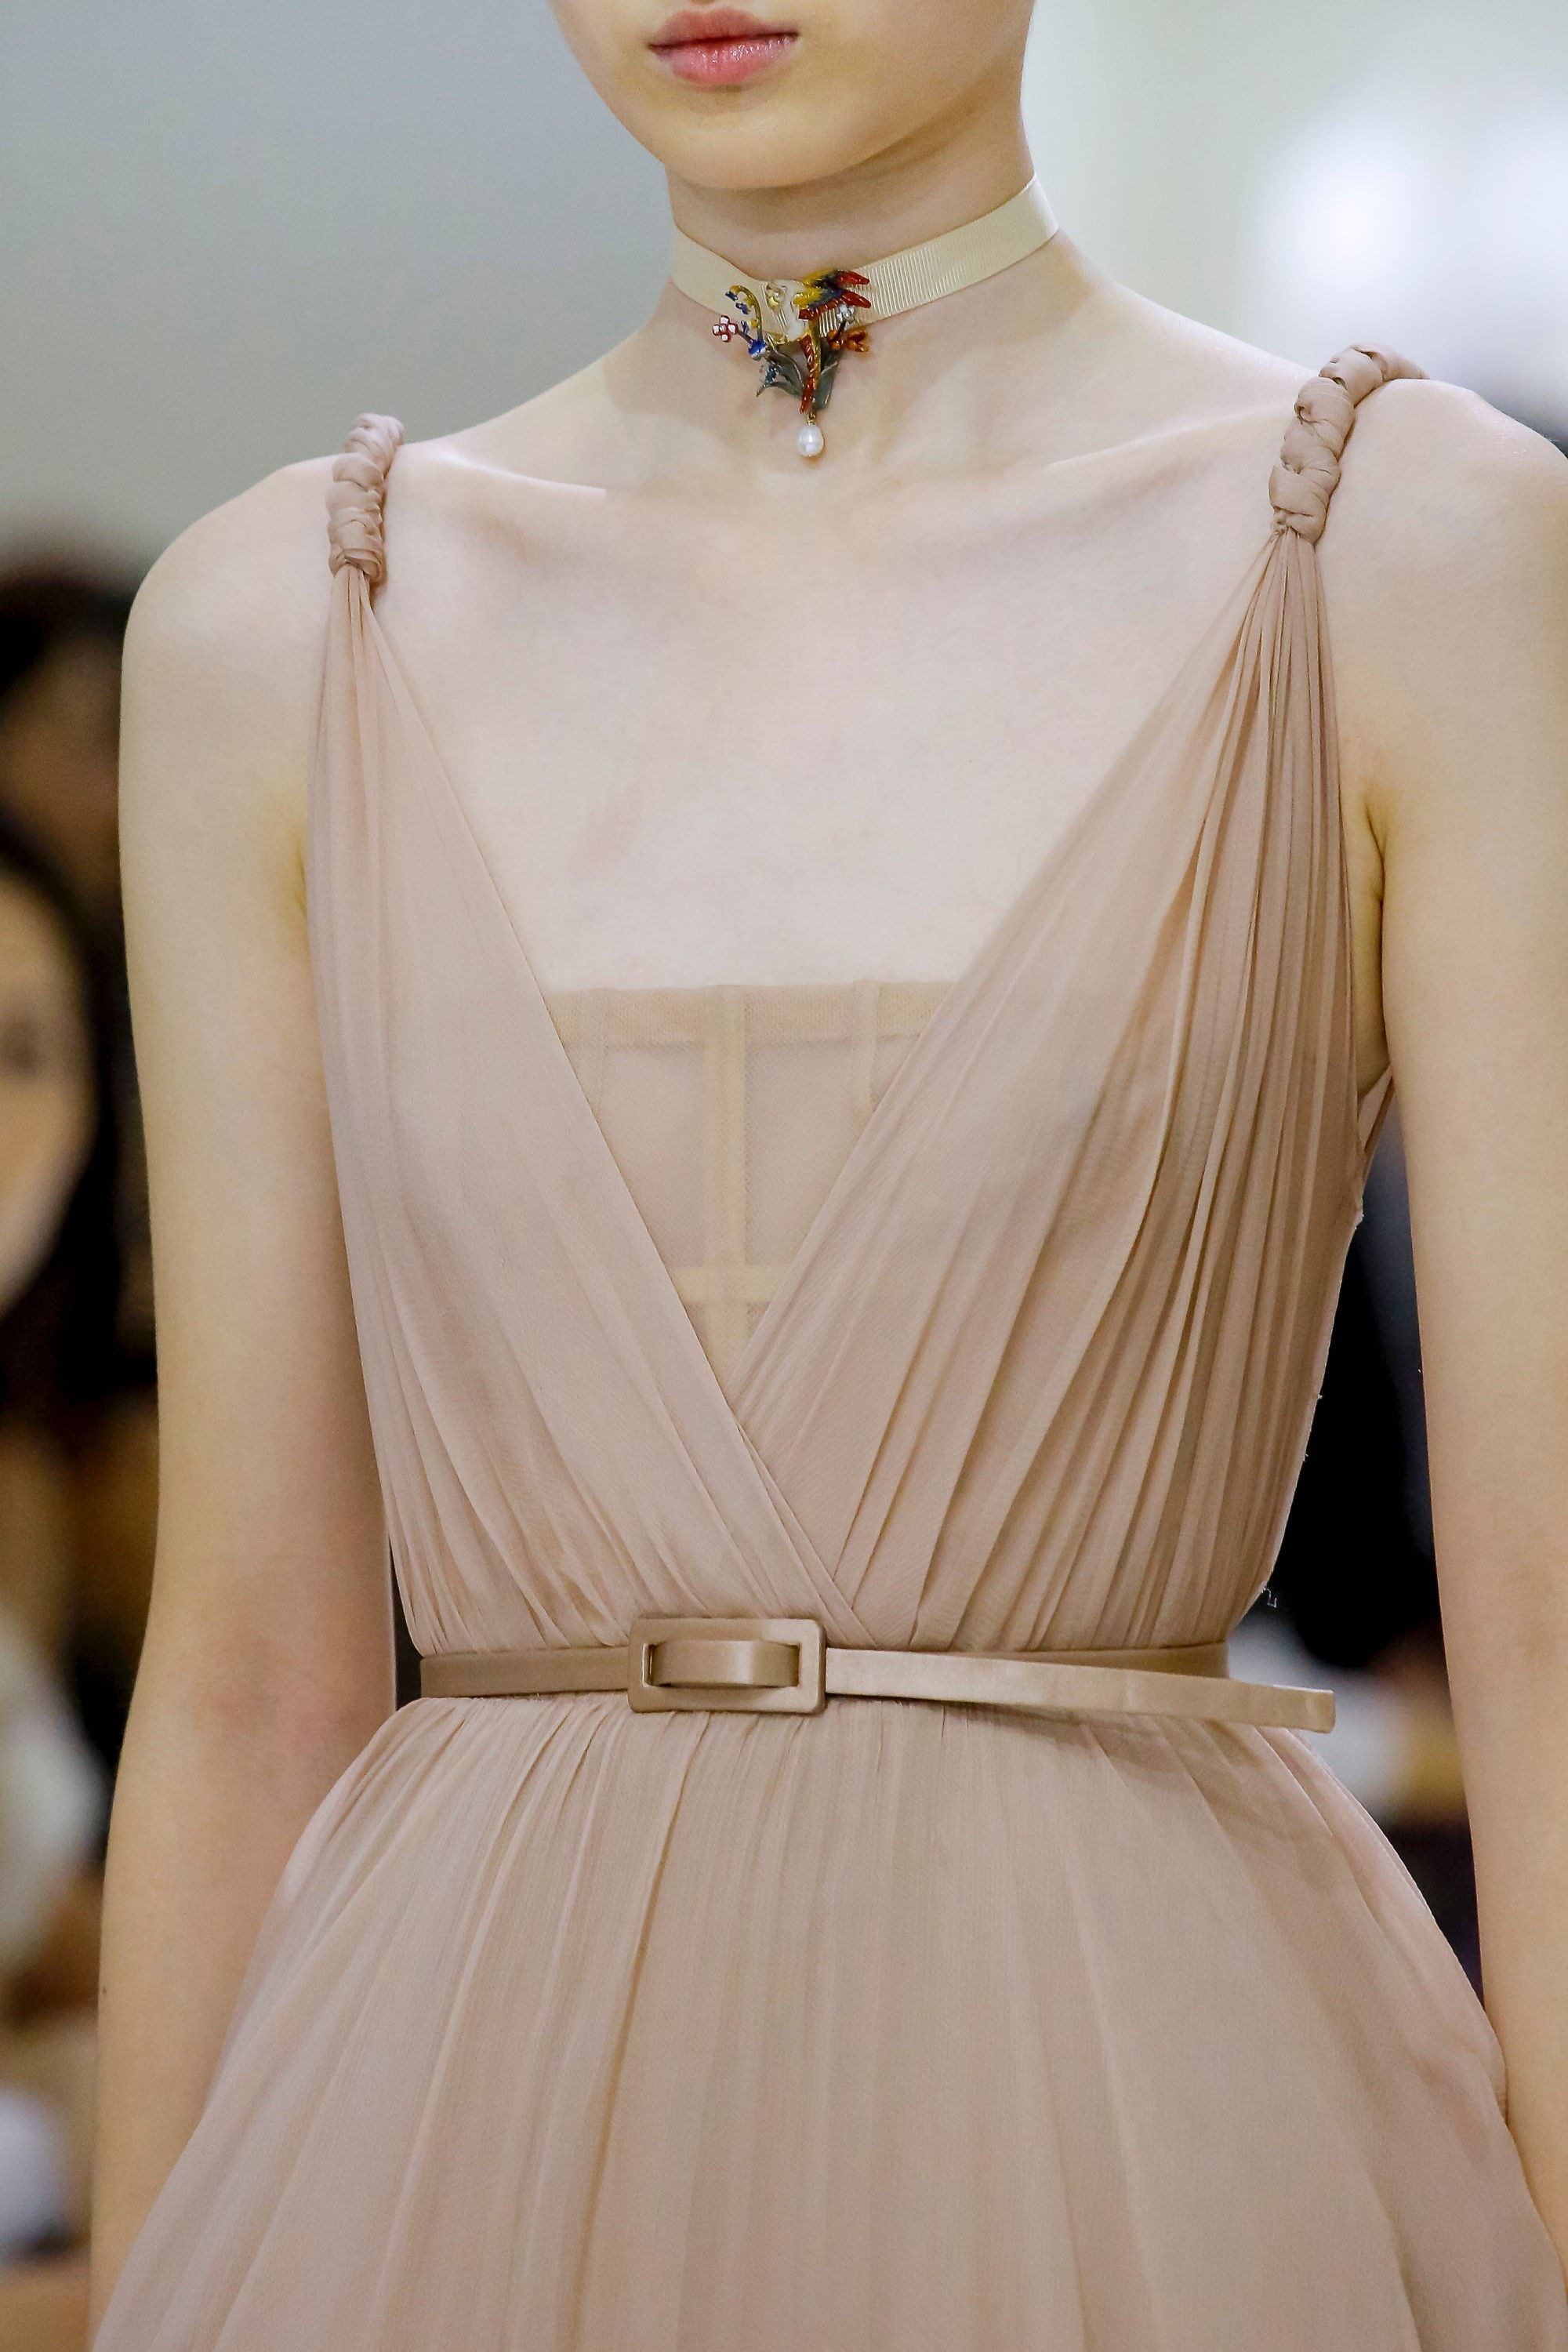 dior couture chokers style inspiration portarte.jpg